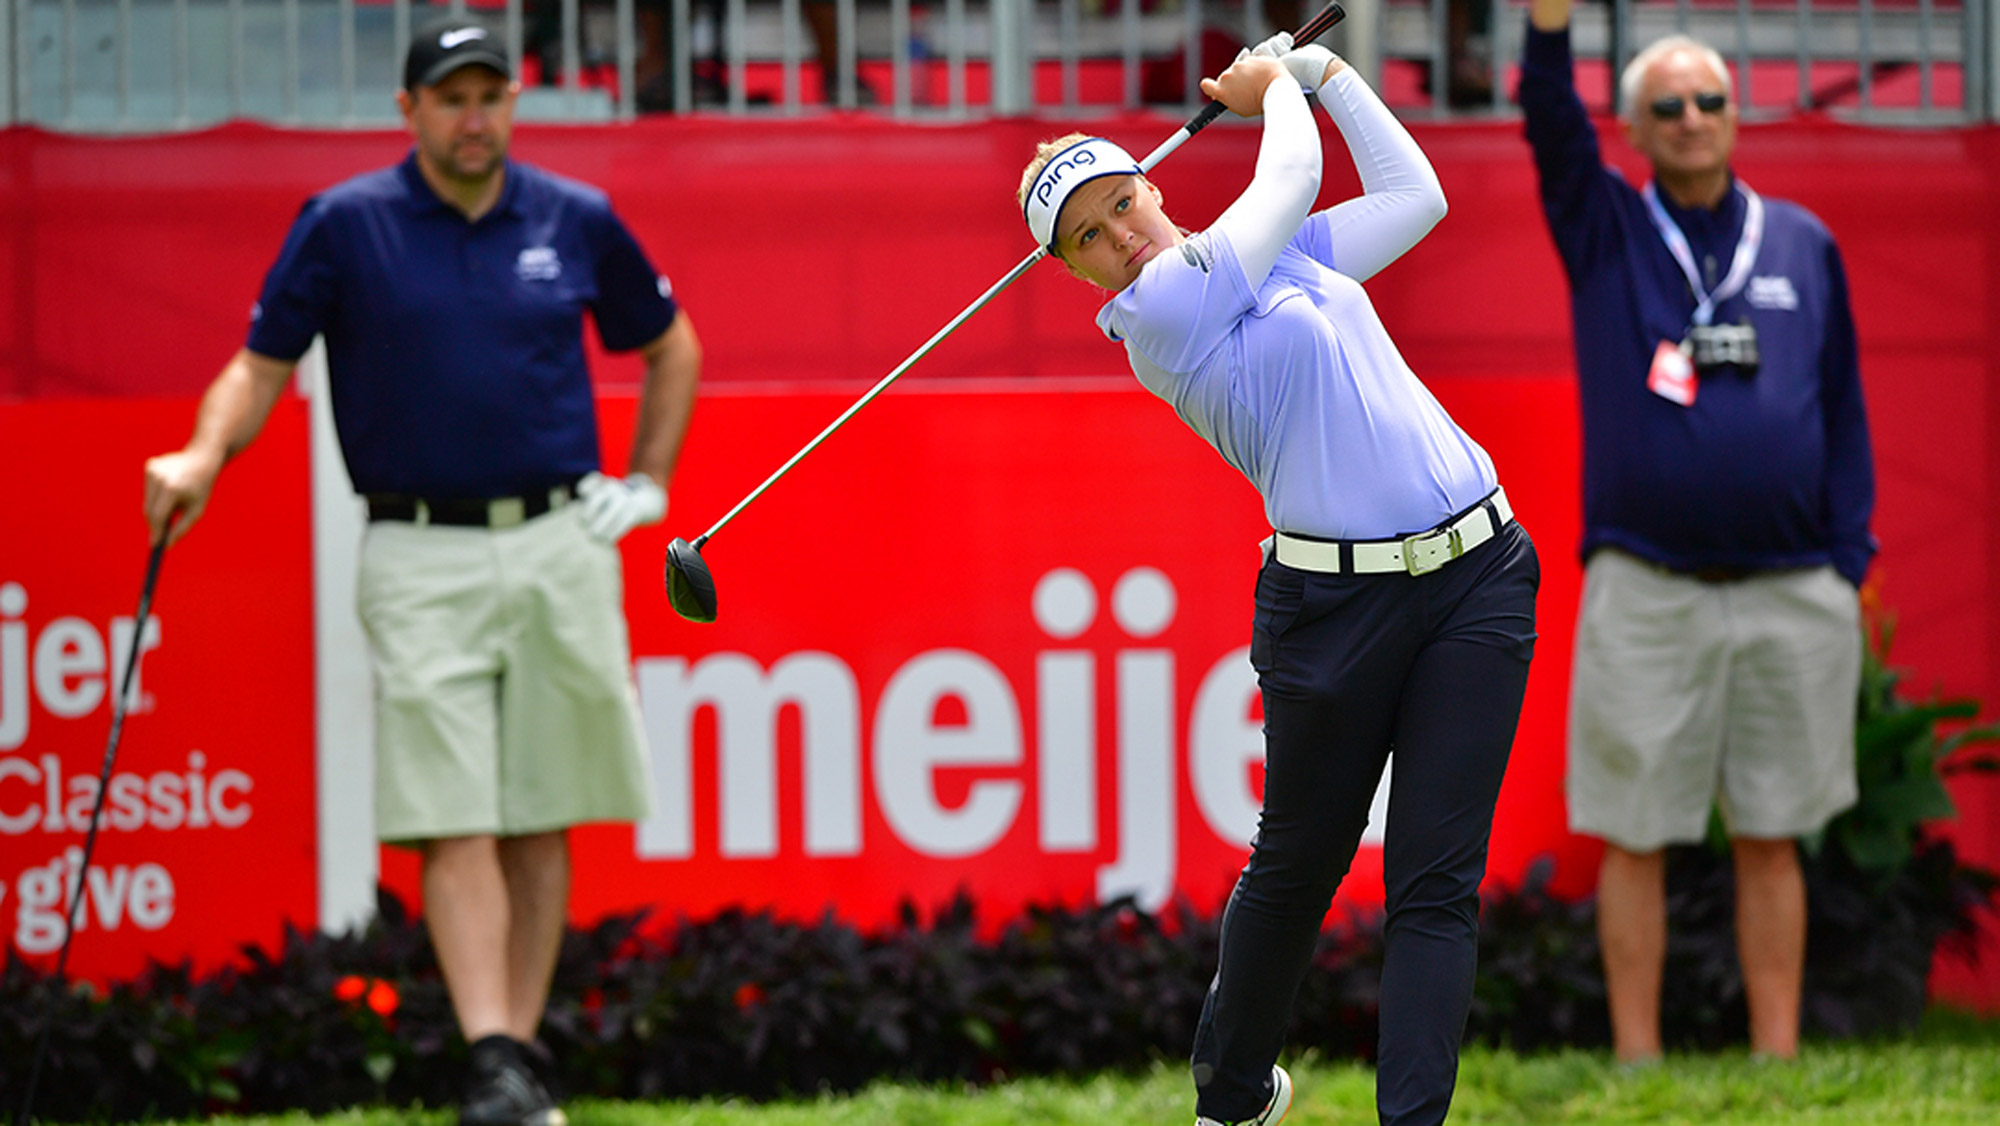 Brooke Henderson Takes a Swing at the Meijer LPGA Classic